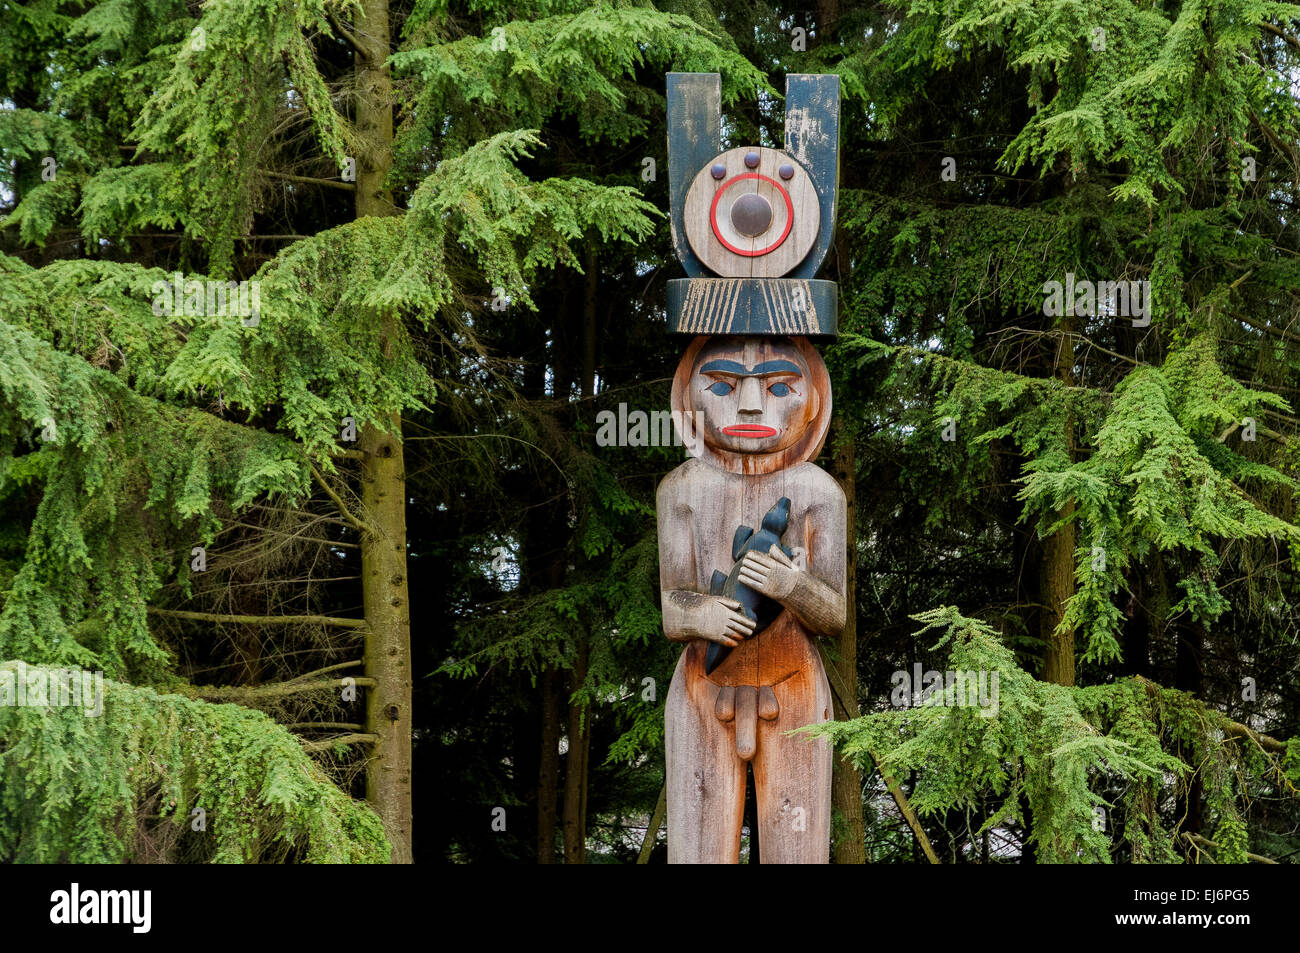 Totem pole, Museum of Anthropology grounds, UBC, Vancouver, British Columbia, Canada - Stock Image